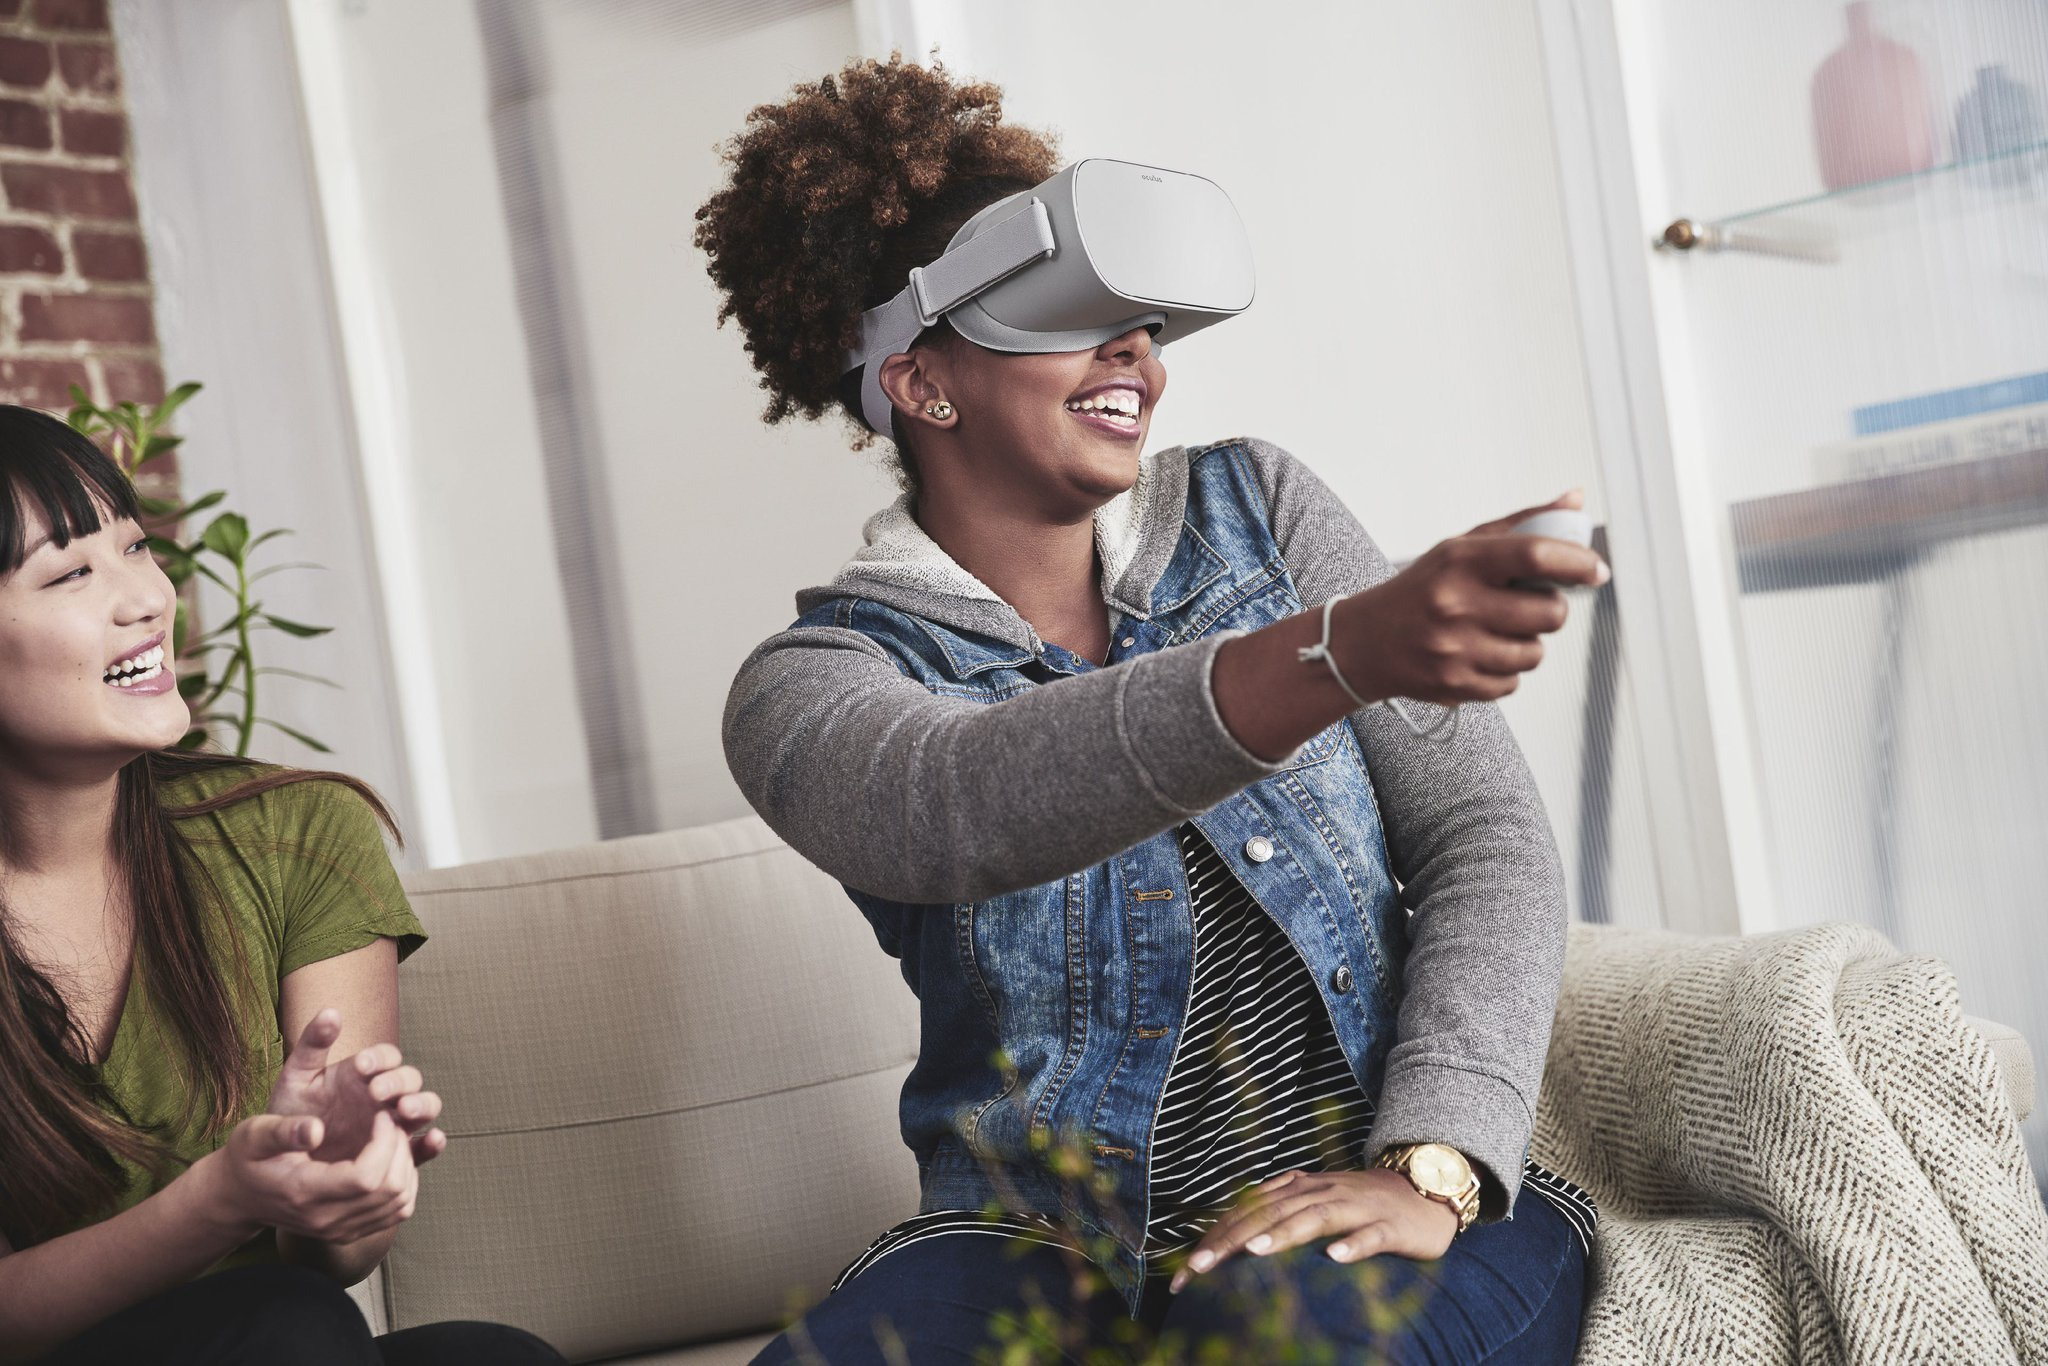 Oculus announces the standalone $199 Oculus Go, and the Oculus Rift is now cheaper